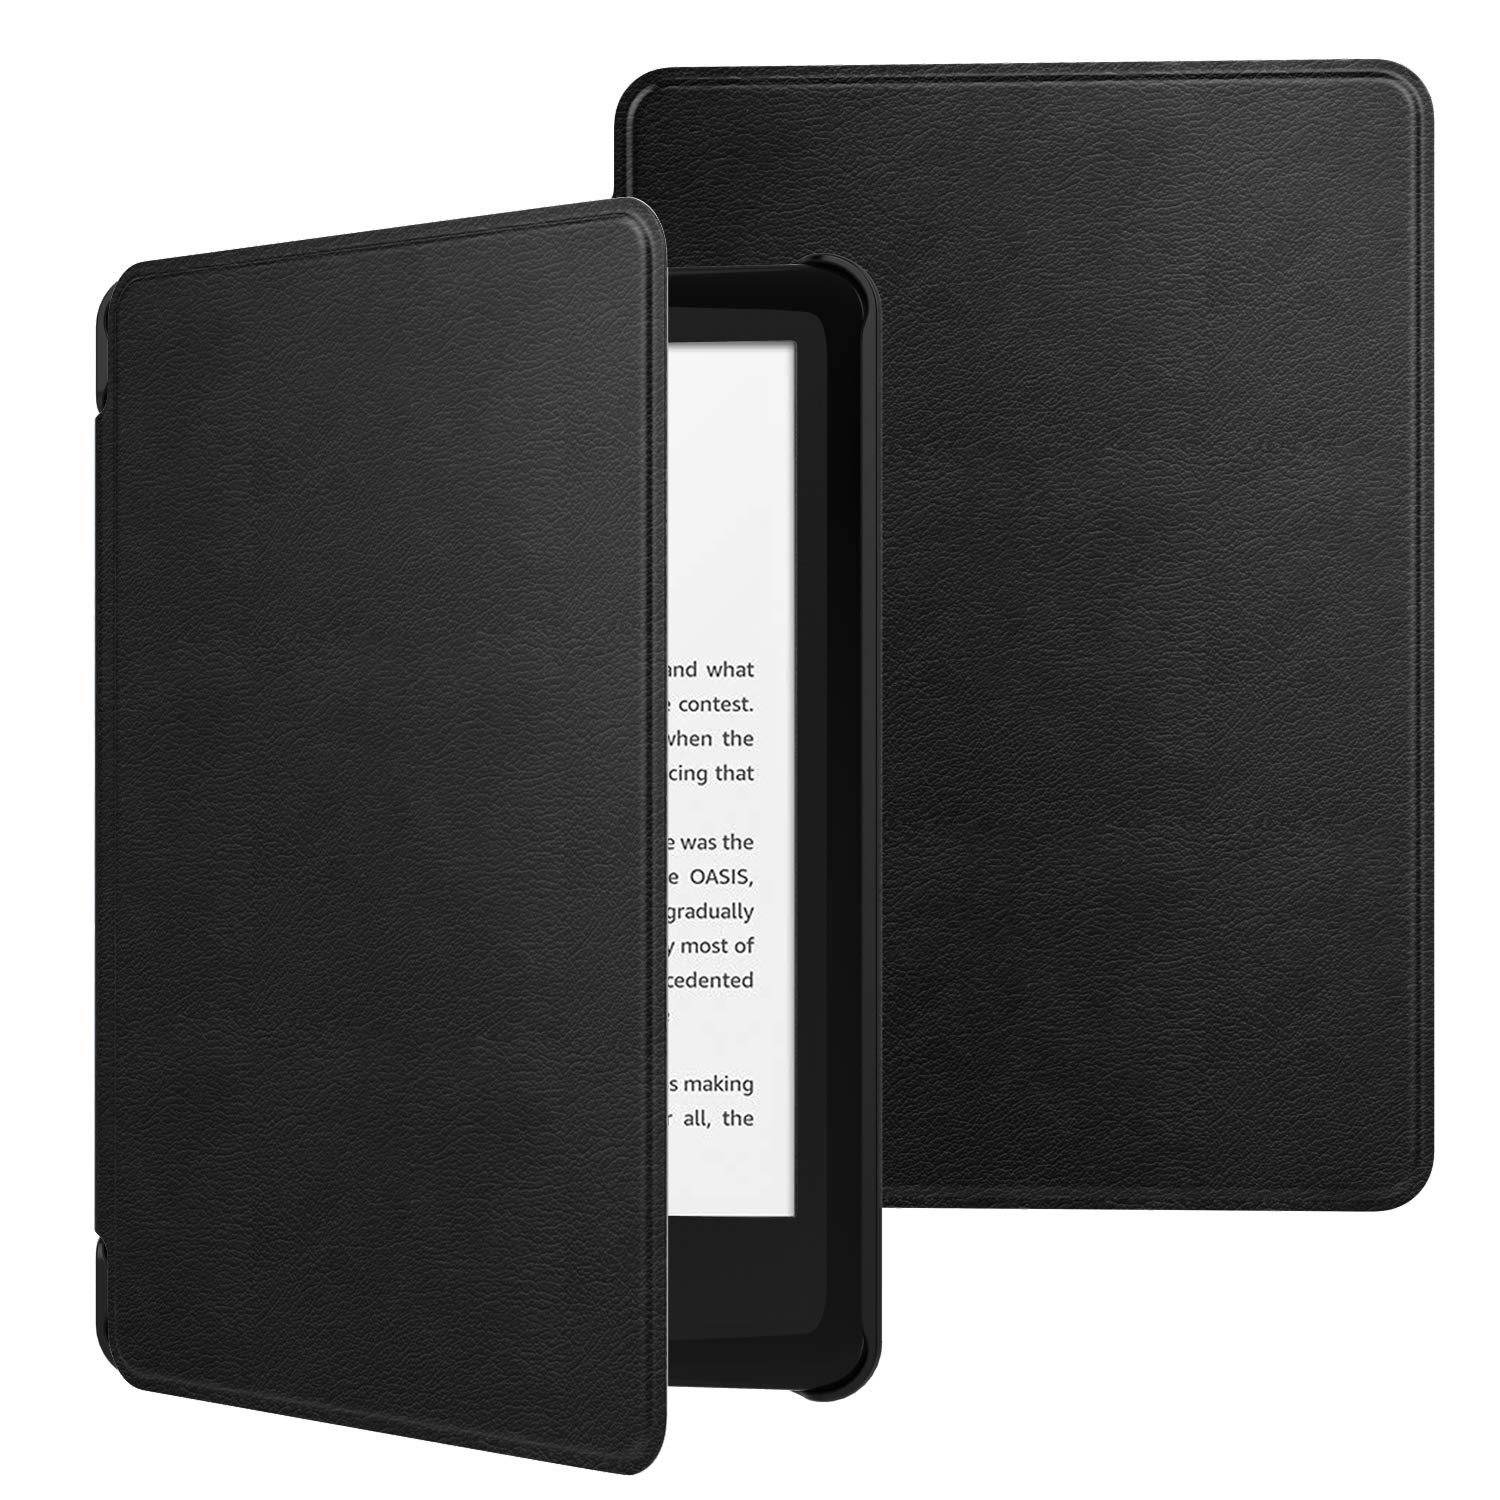 MoKo Case Fits All-New Kindle (10th Generation - 2019 Release Only), Ultra Lightweight Shell Cover with Auto Wake/Sleep, Will Not Fit Kindle Paperwhite 10th Generation 2018 - Black